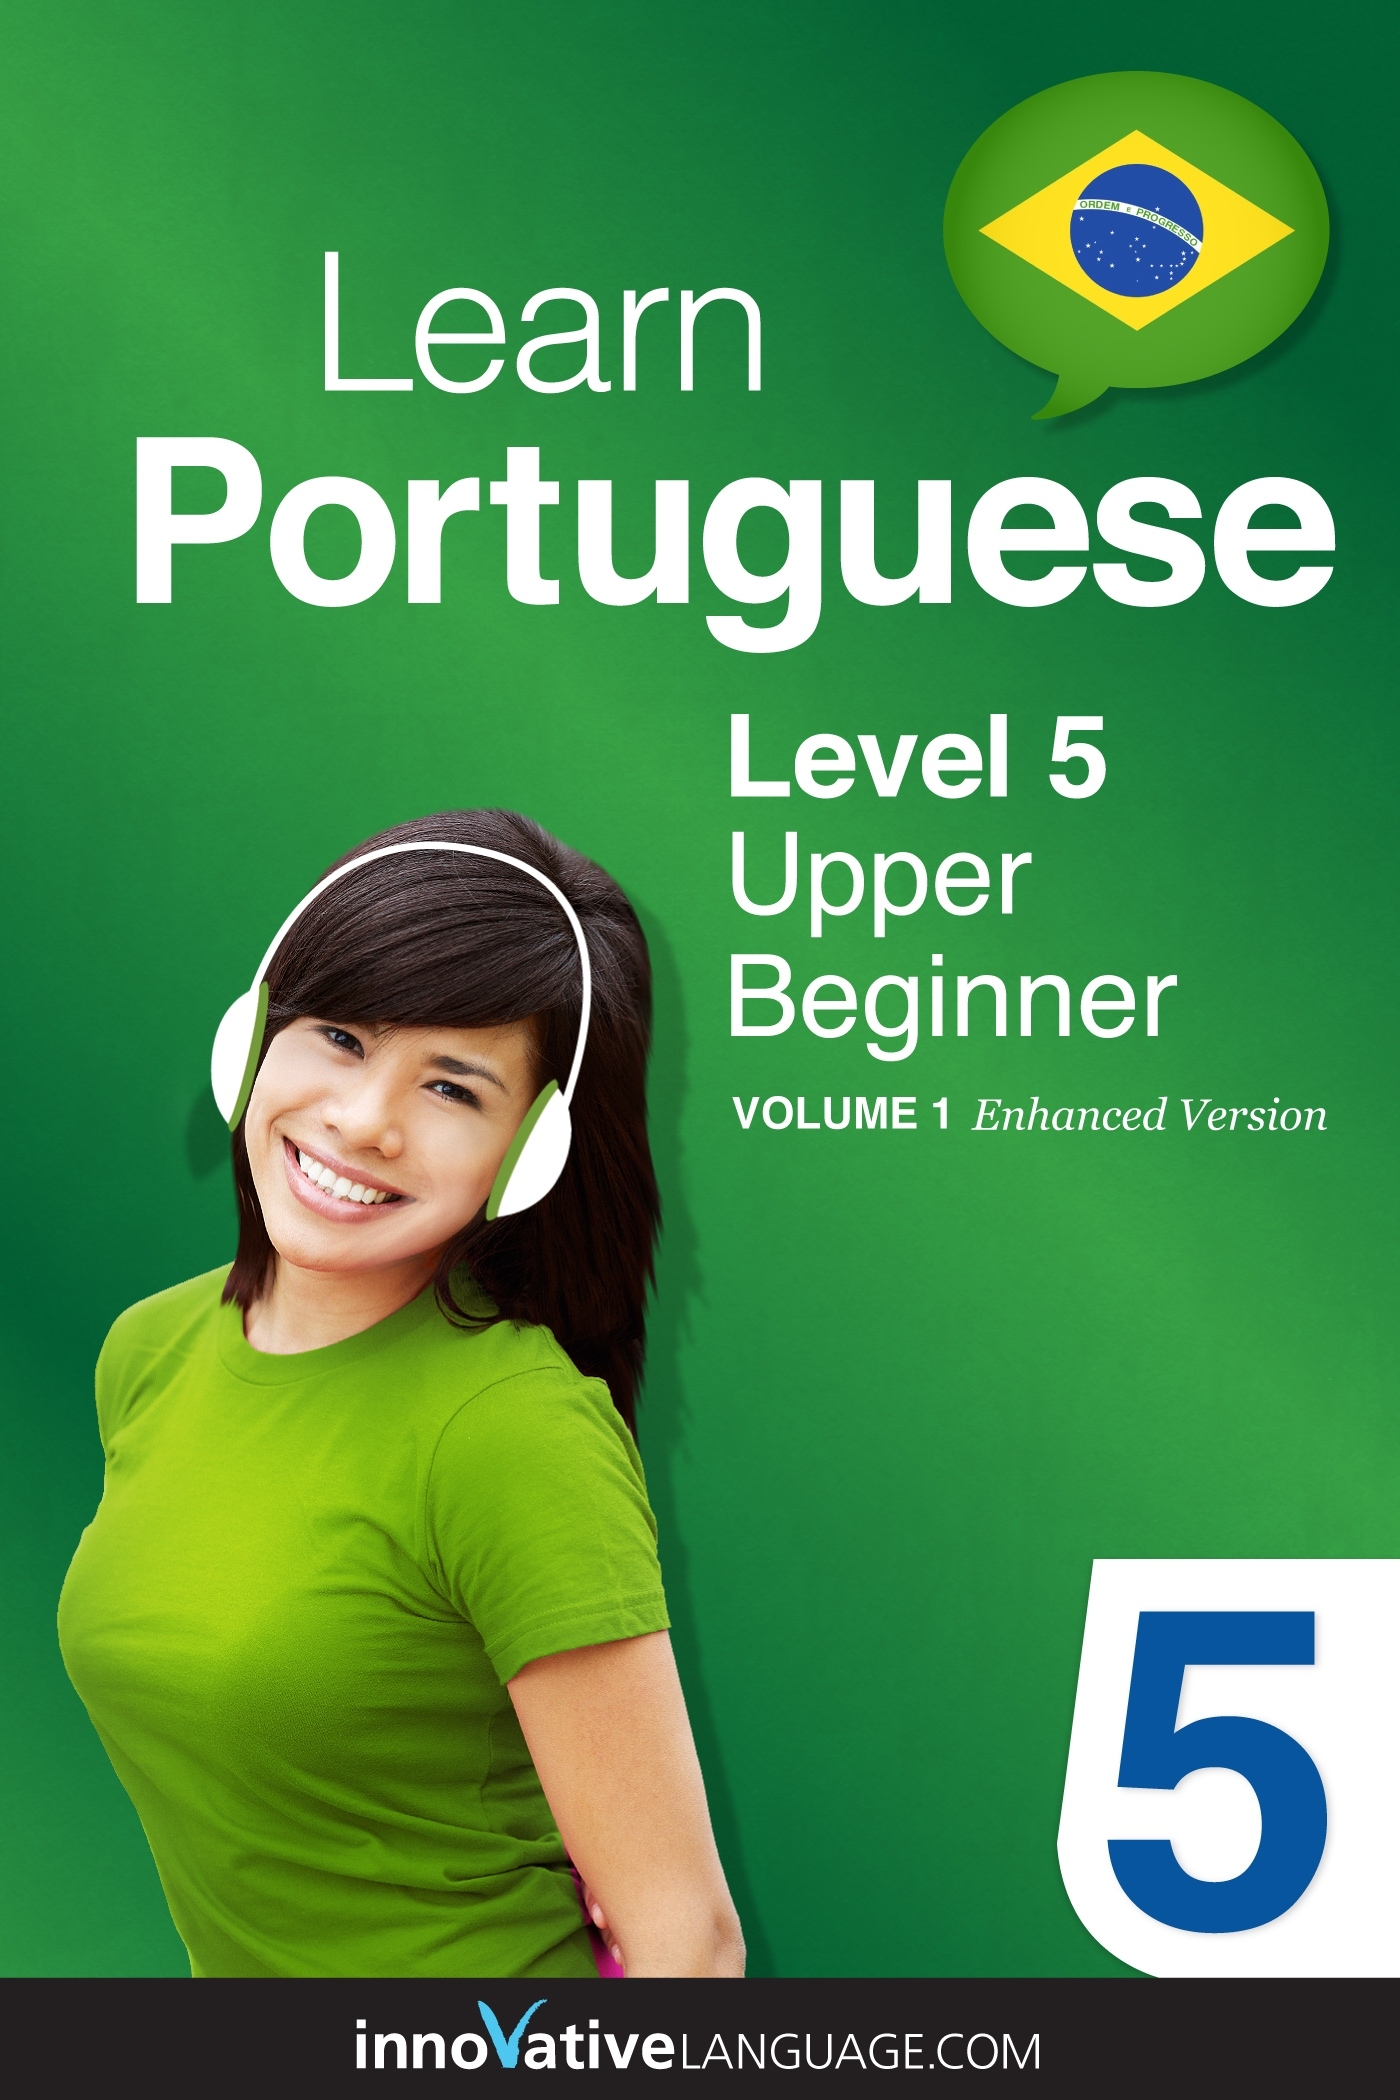 [eBook] Learn Portuguese - Level 5: Upper Beginner